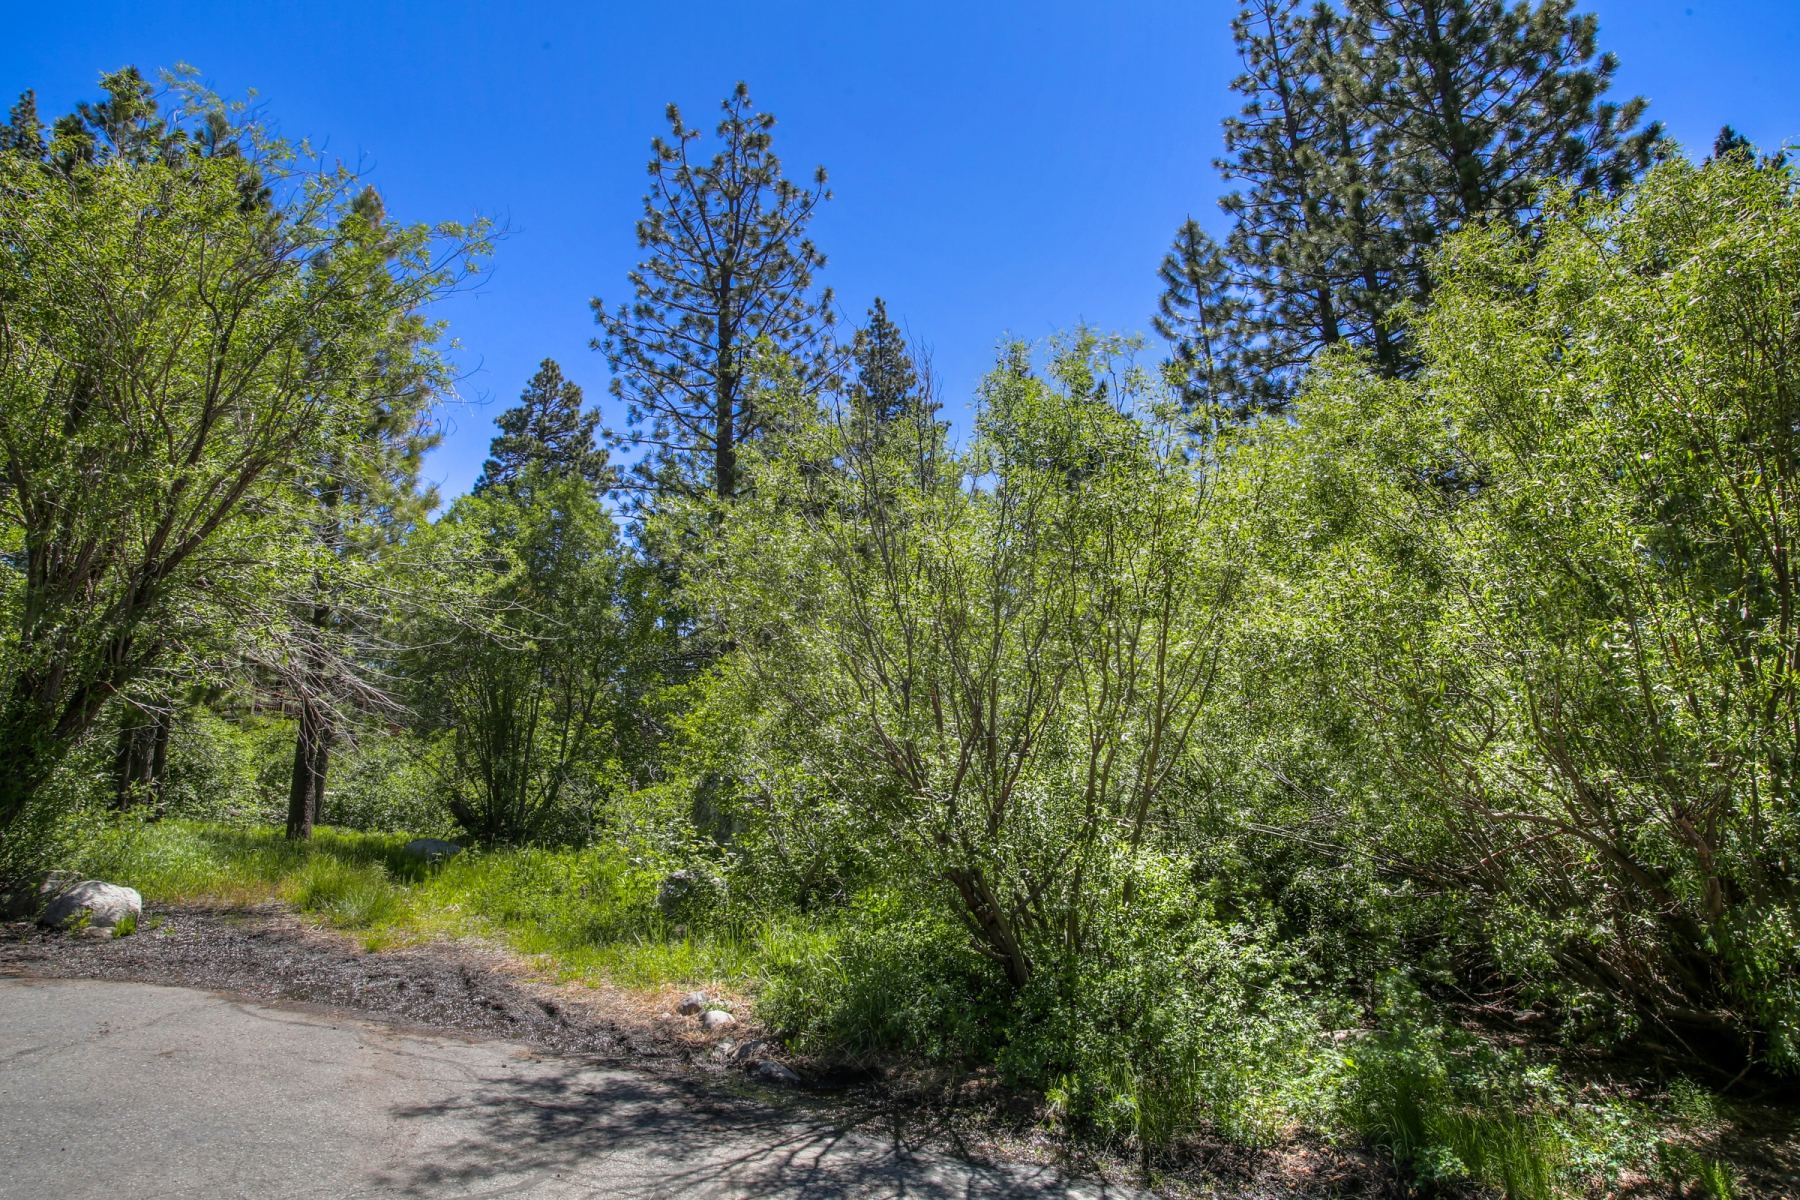 Additional photo for property listing at 13794 Donner Pass Road, Truckee, California 96161 13794 Donner Pass Road Truckee, California 96161 Estados Unidos